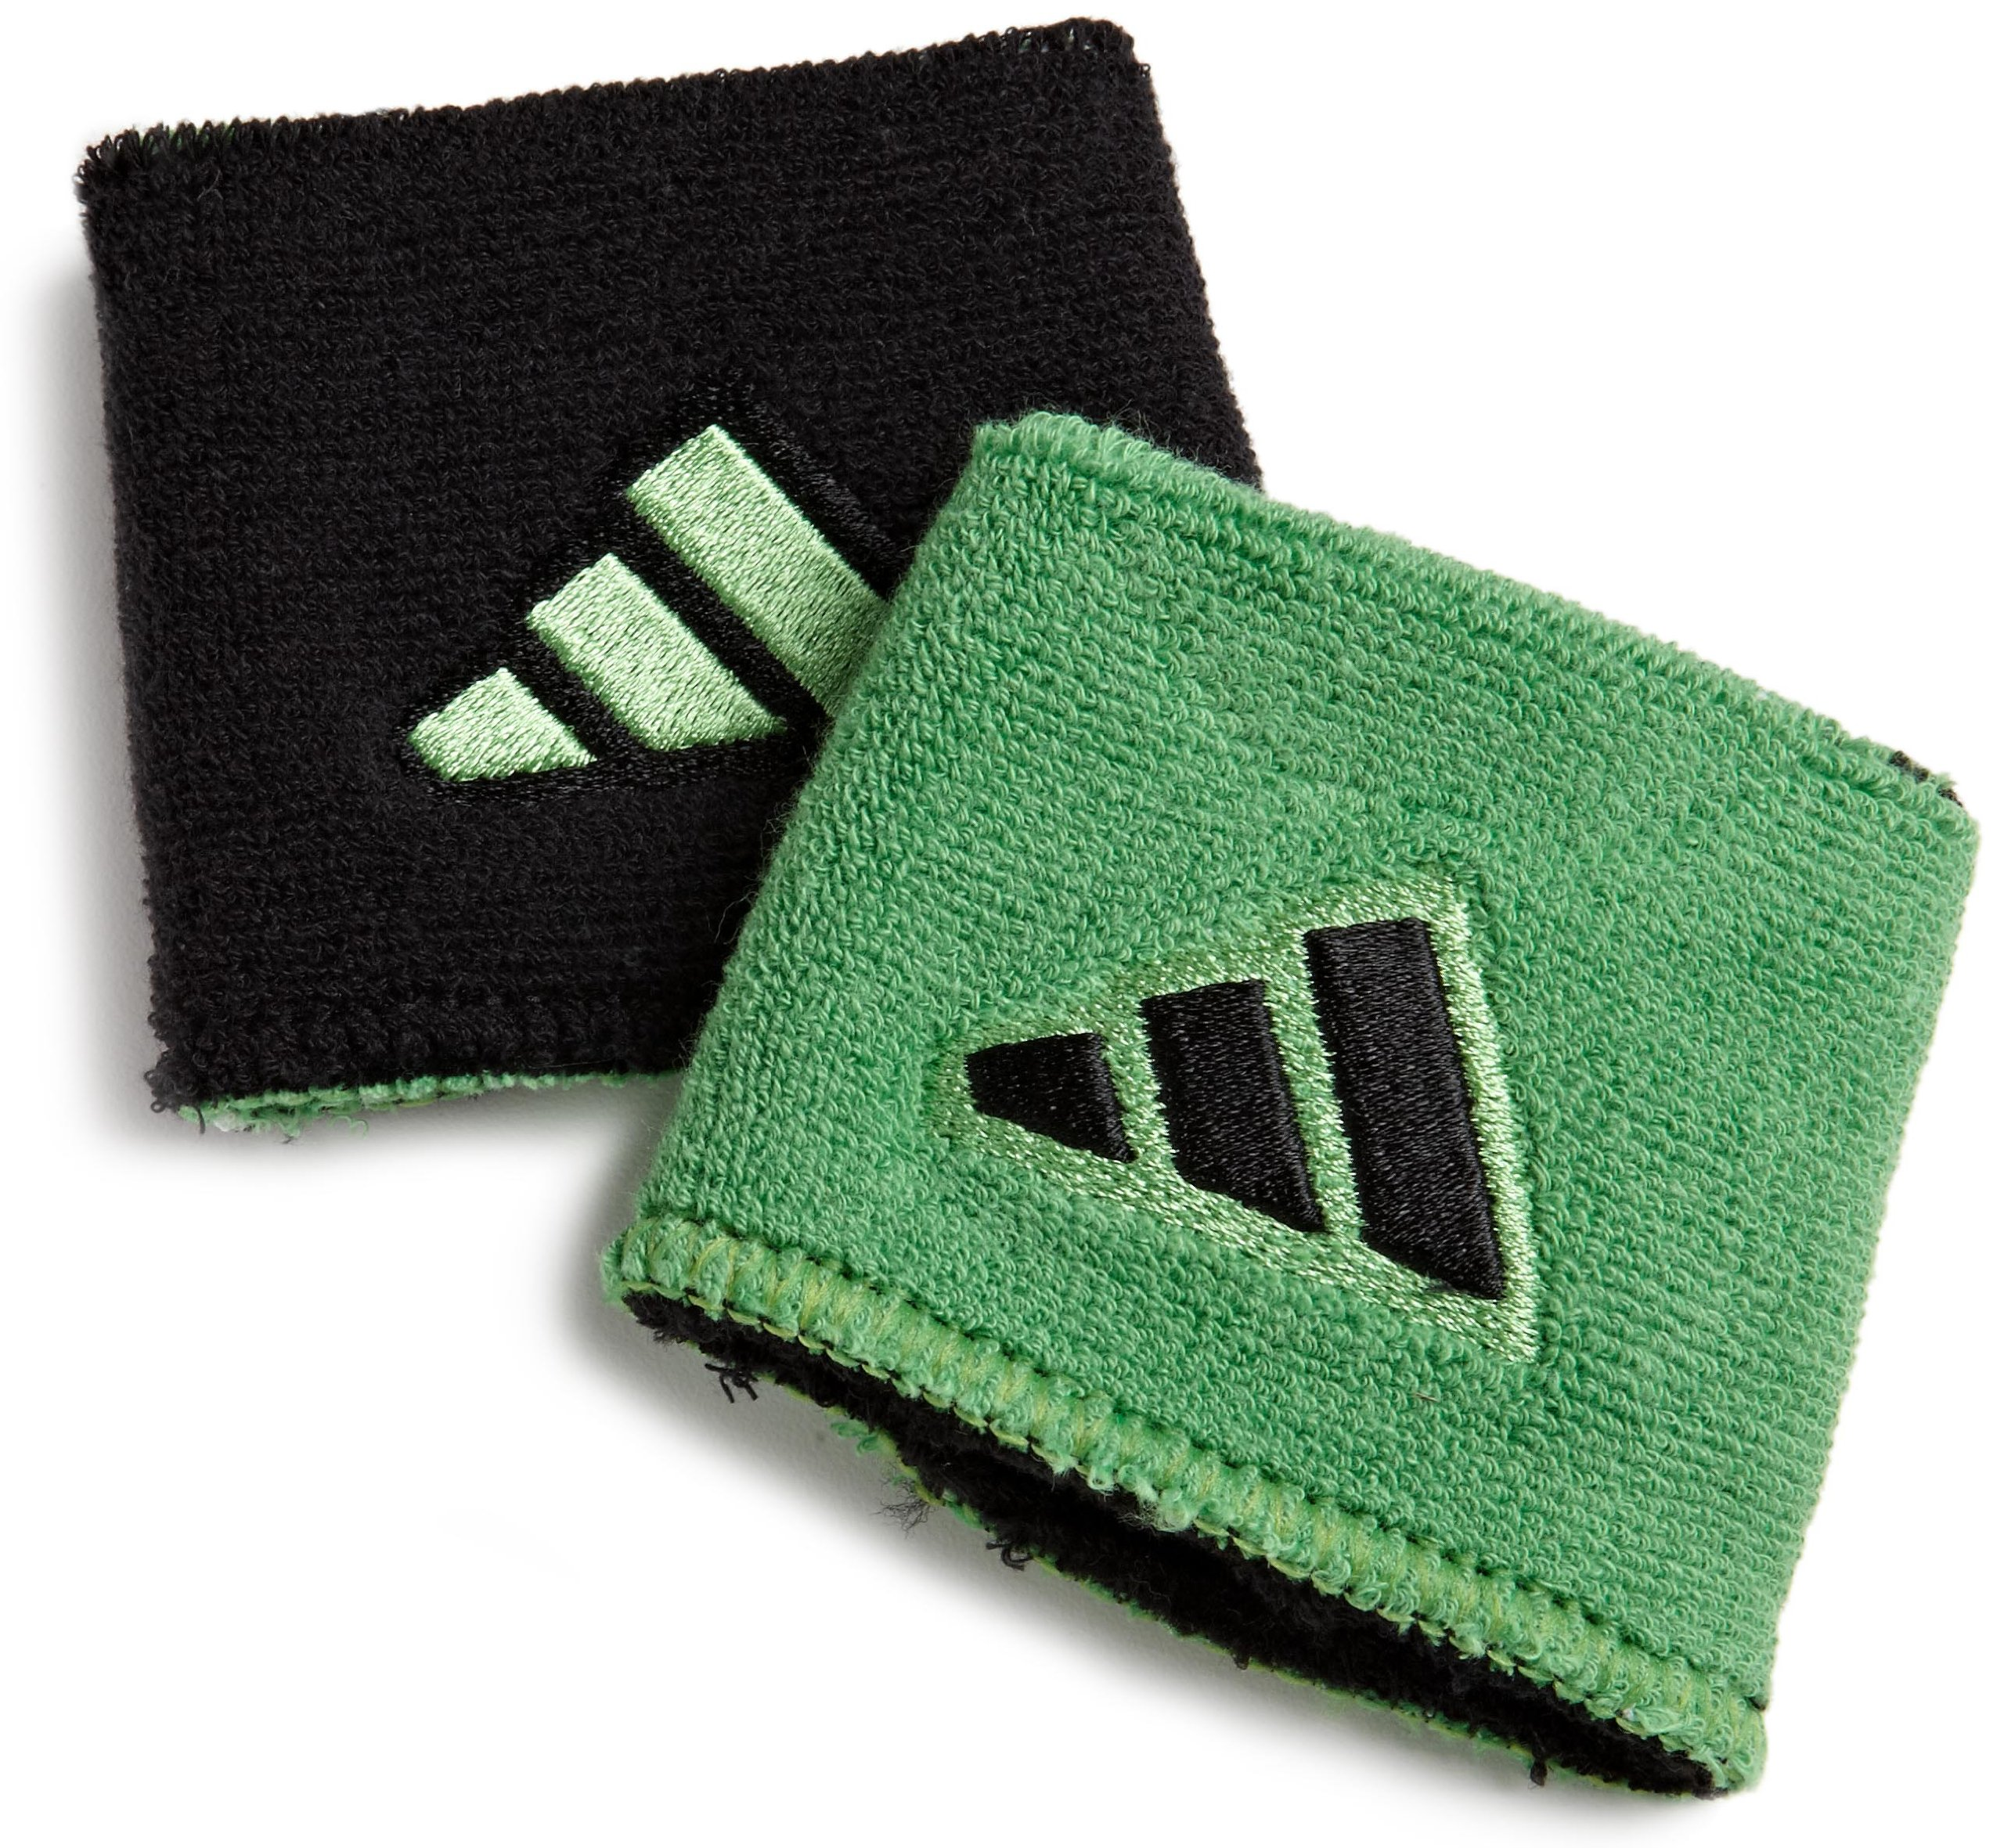 adidas Interval Reversible Wristband, Black/Intense Green / Intense Green/Black, One Size Fits All by adidas (Image #1)